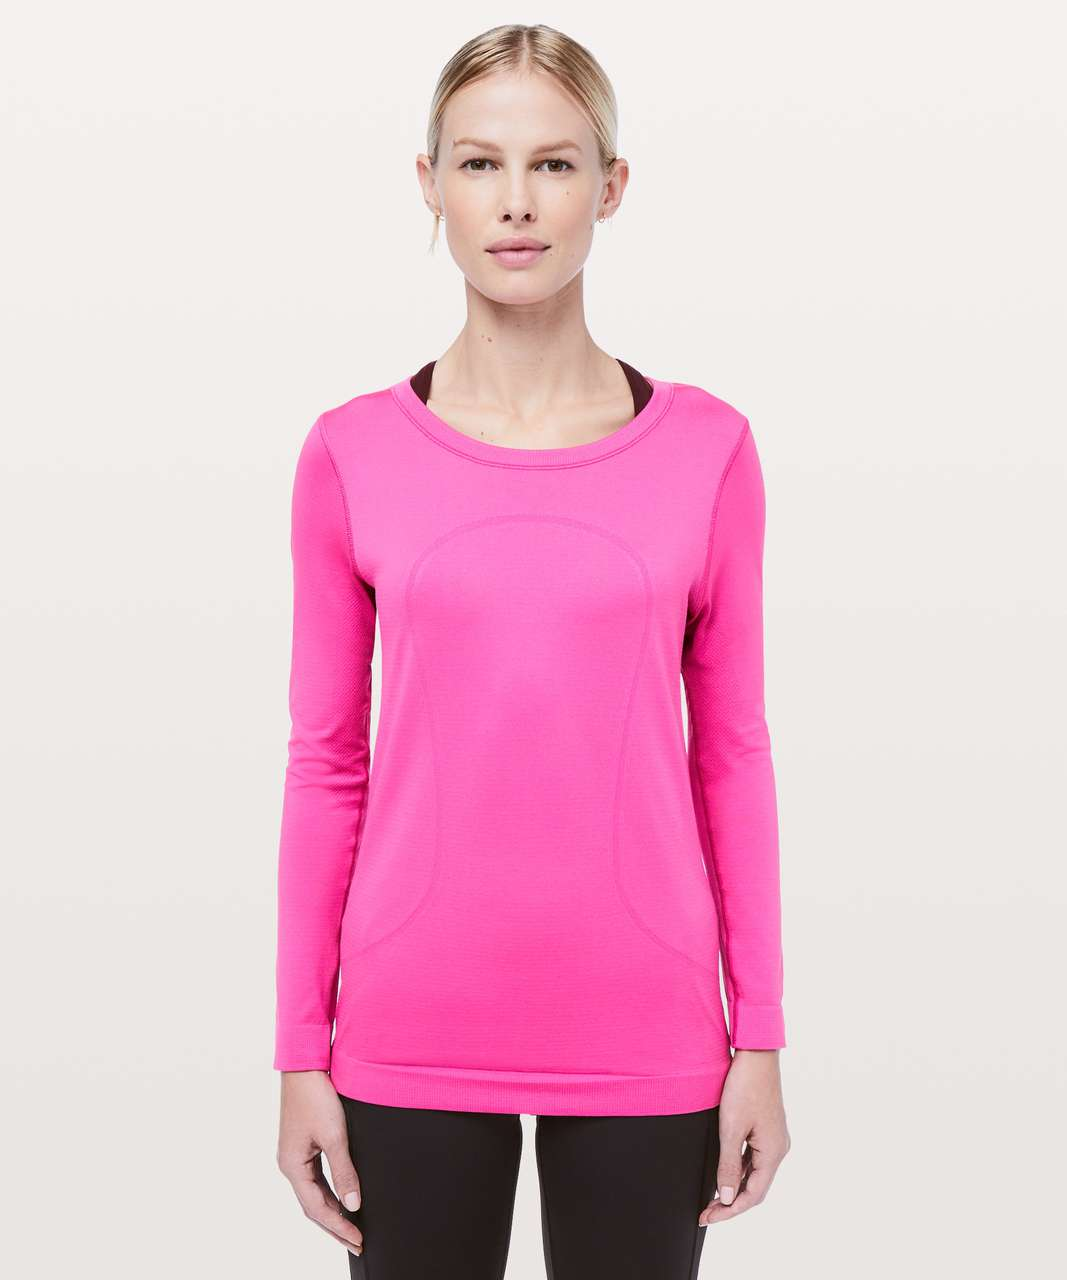 Lululemon Swiftly Tech Long Sleeve (Breeze) *Relaxed Fit - Sonic Pink / Sonic Pink